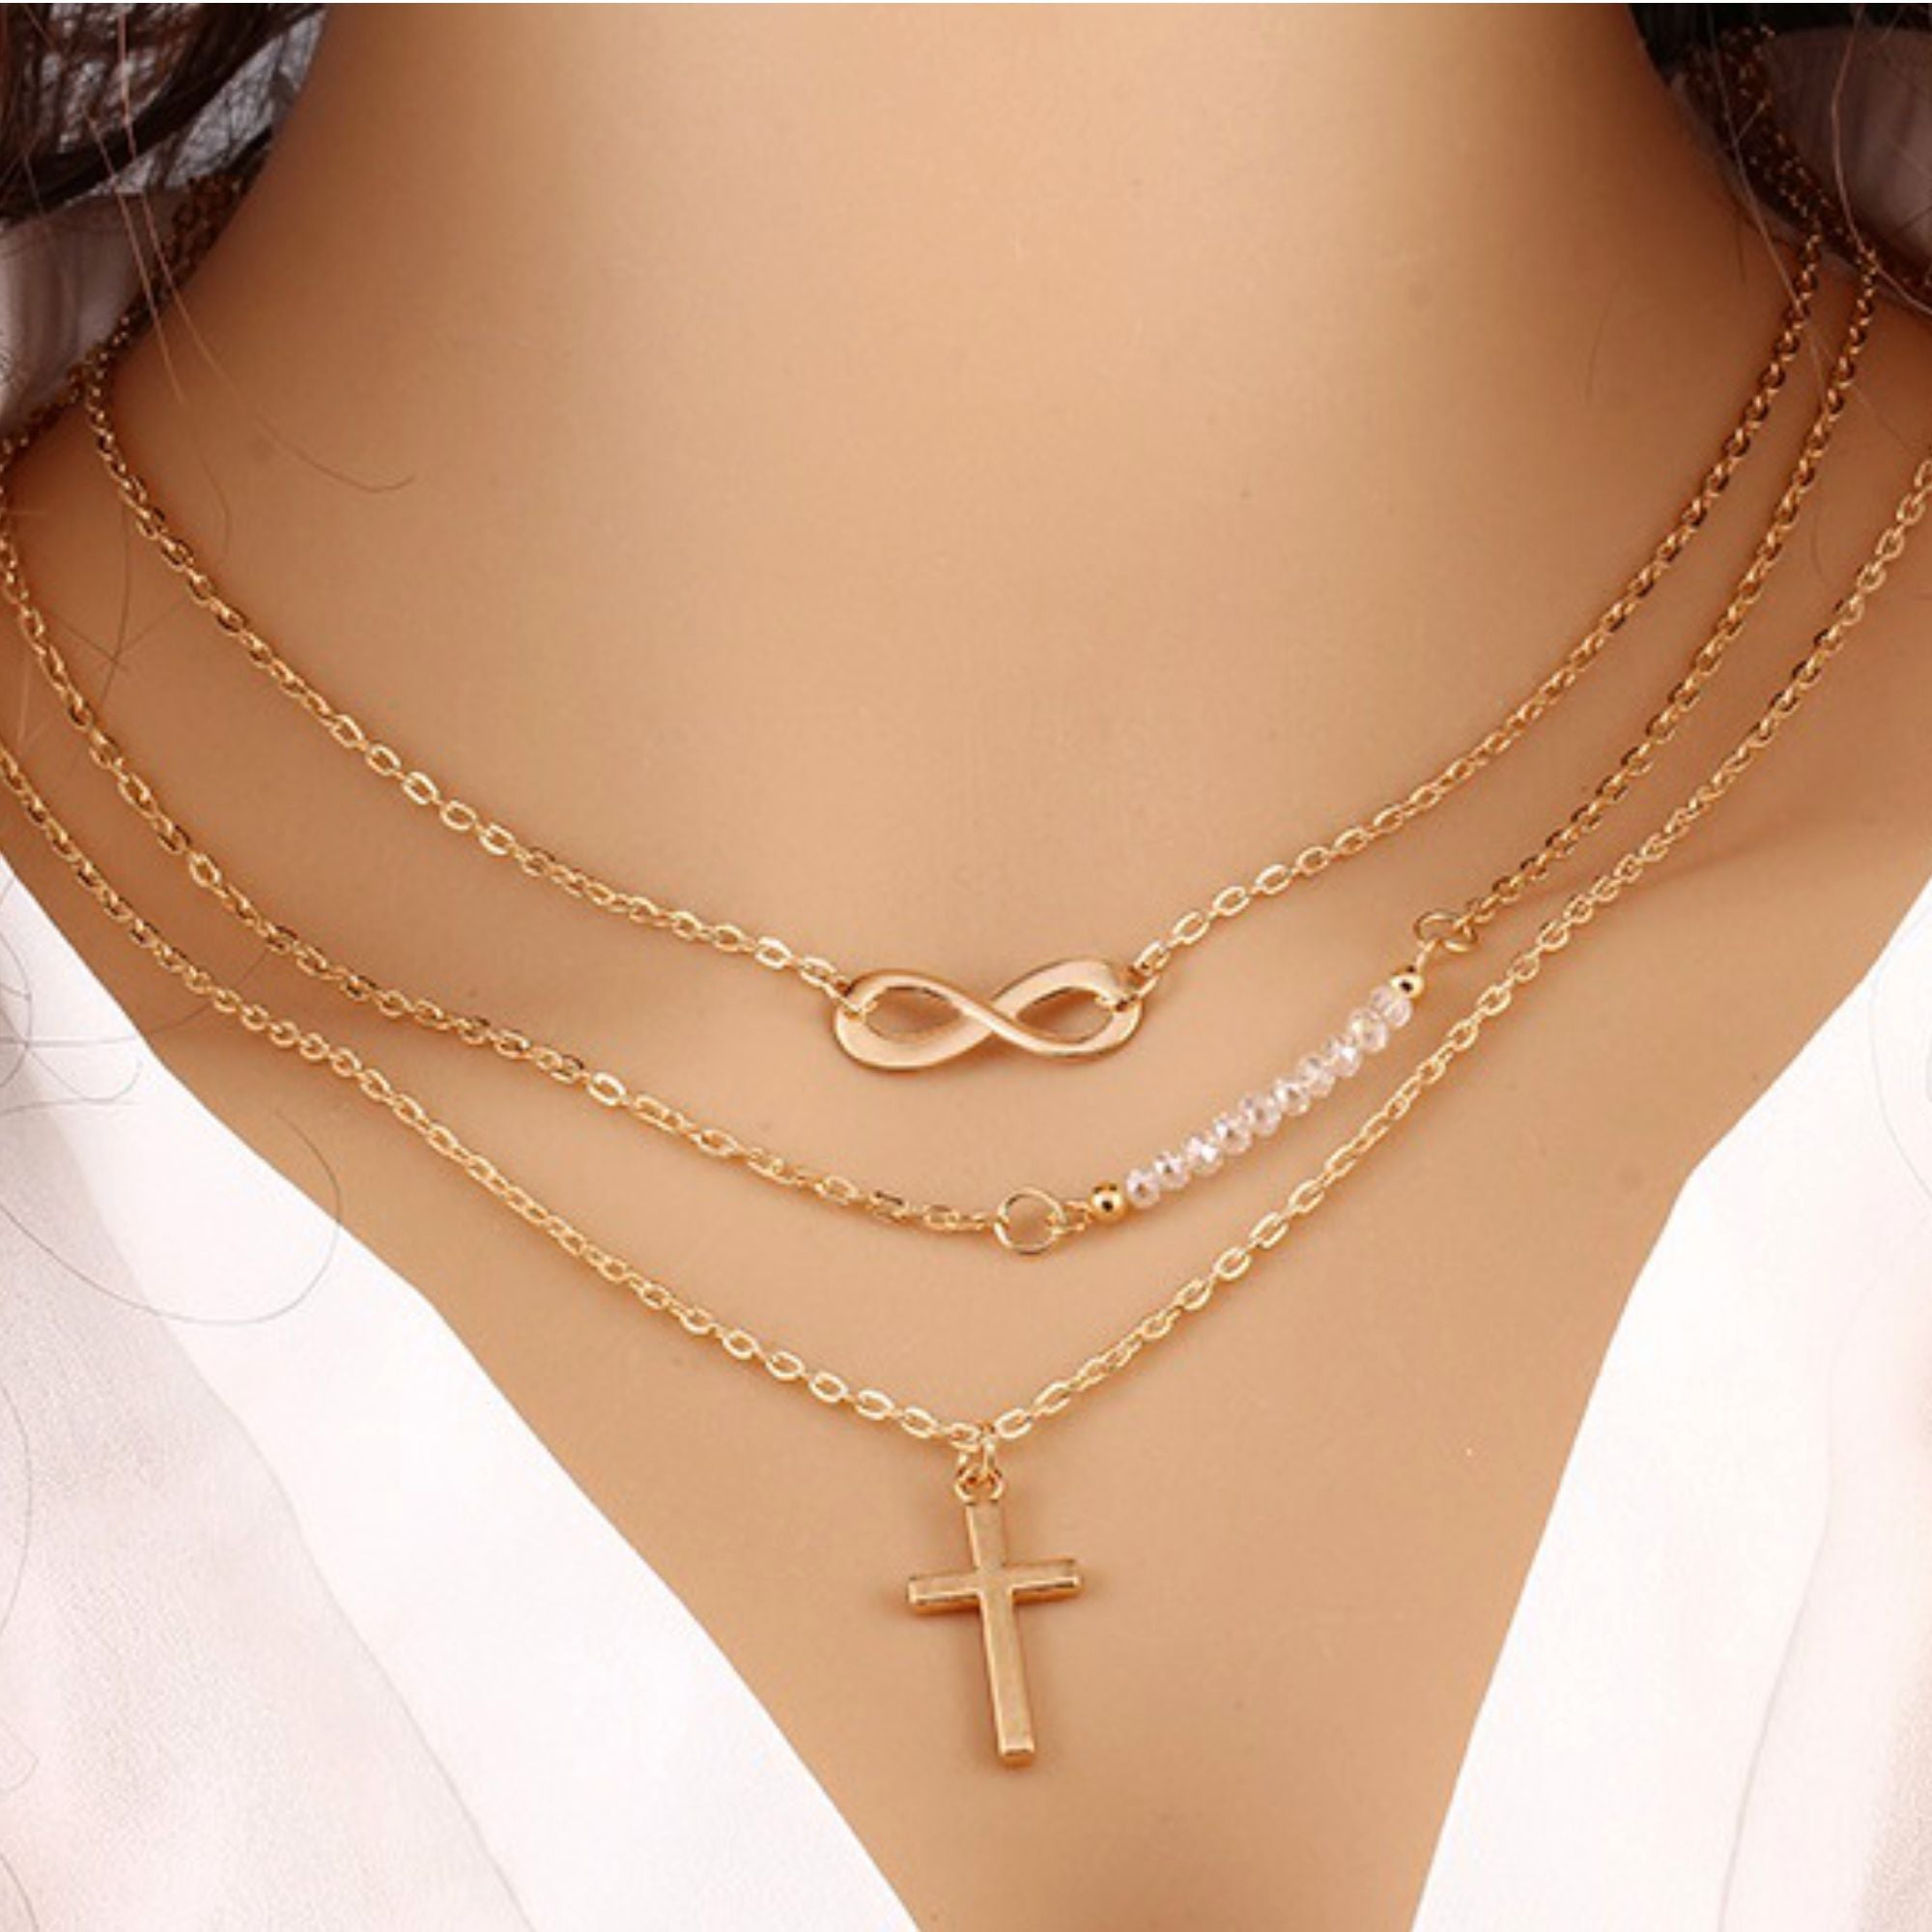 bloomsbury rose gold buckley london necklaces fashion jewellery costume necklace